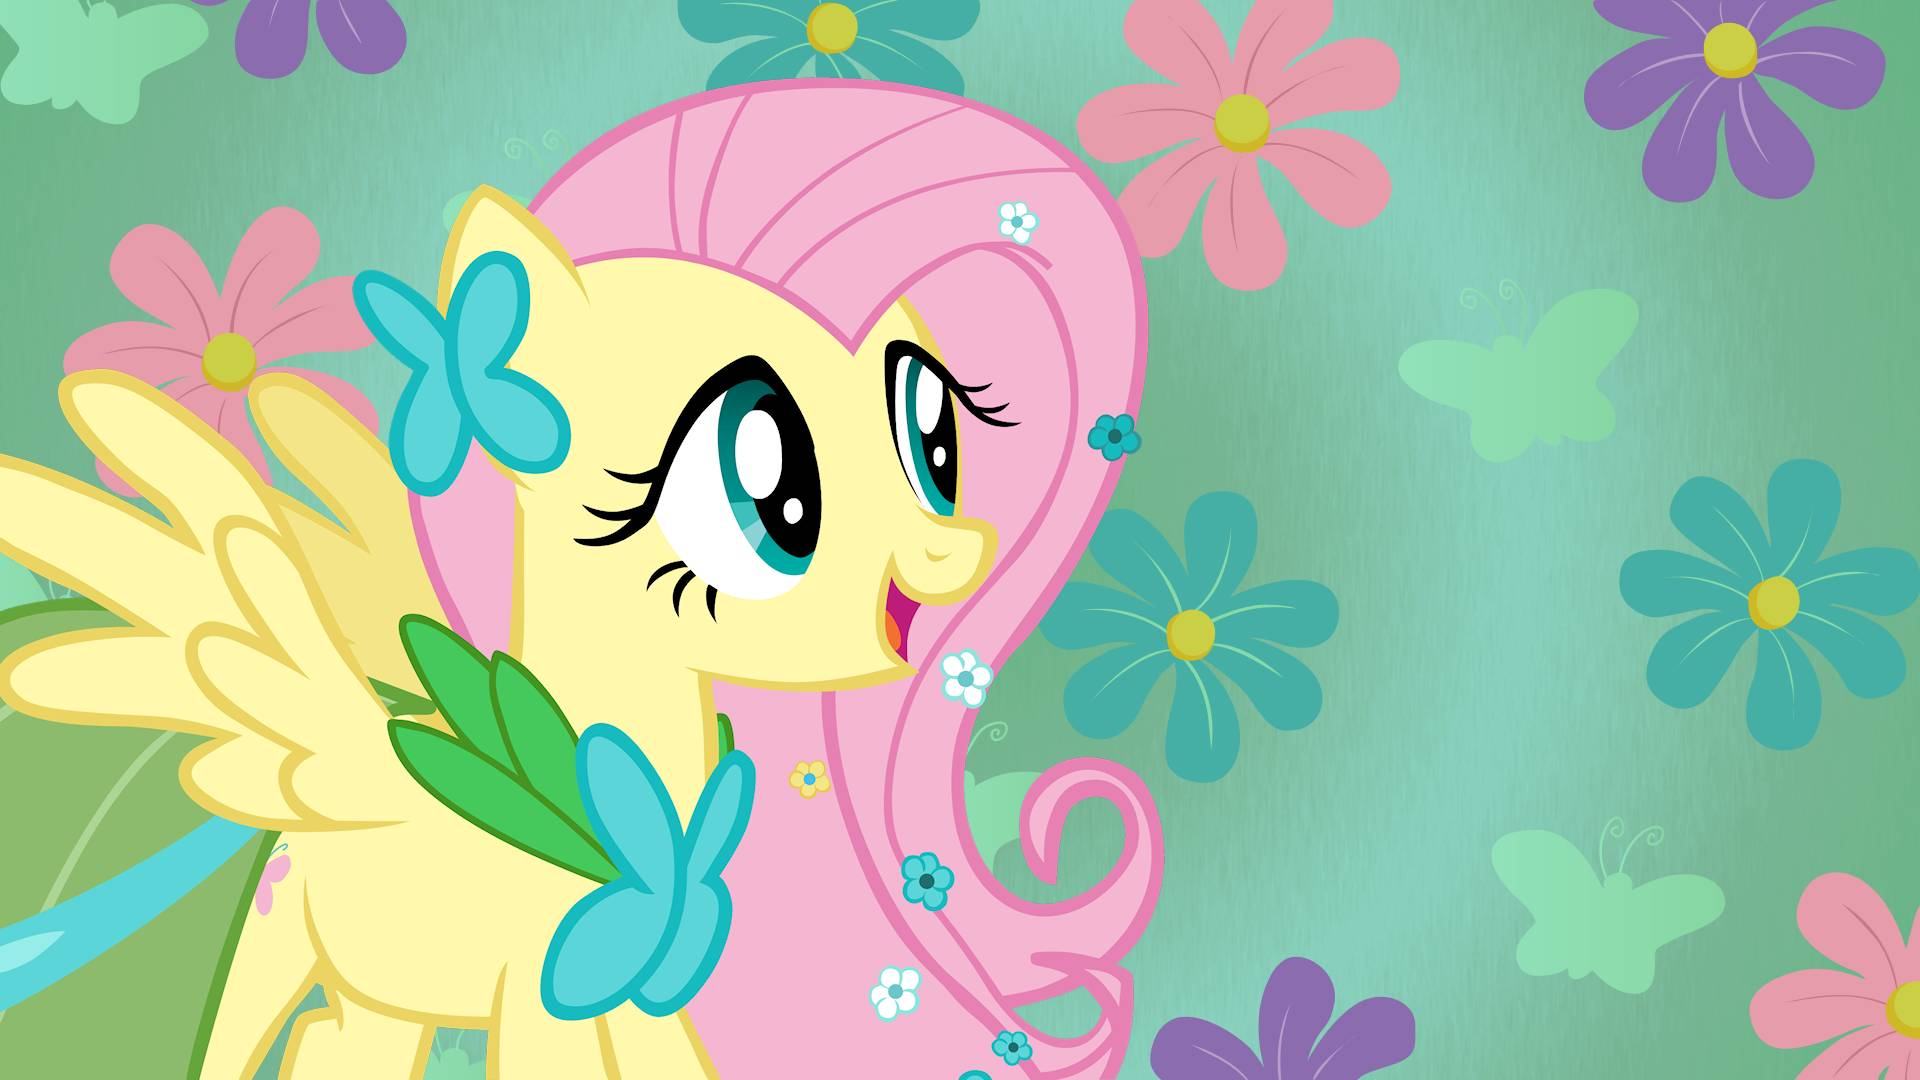 15 Quality My Little Pony Wallpapers Hd Gambar Little Pony